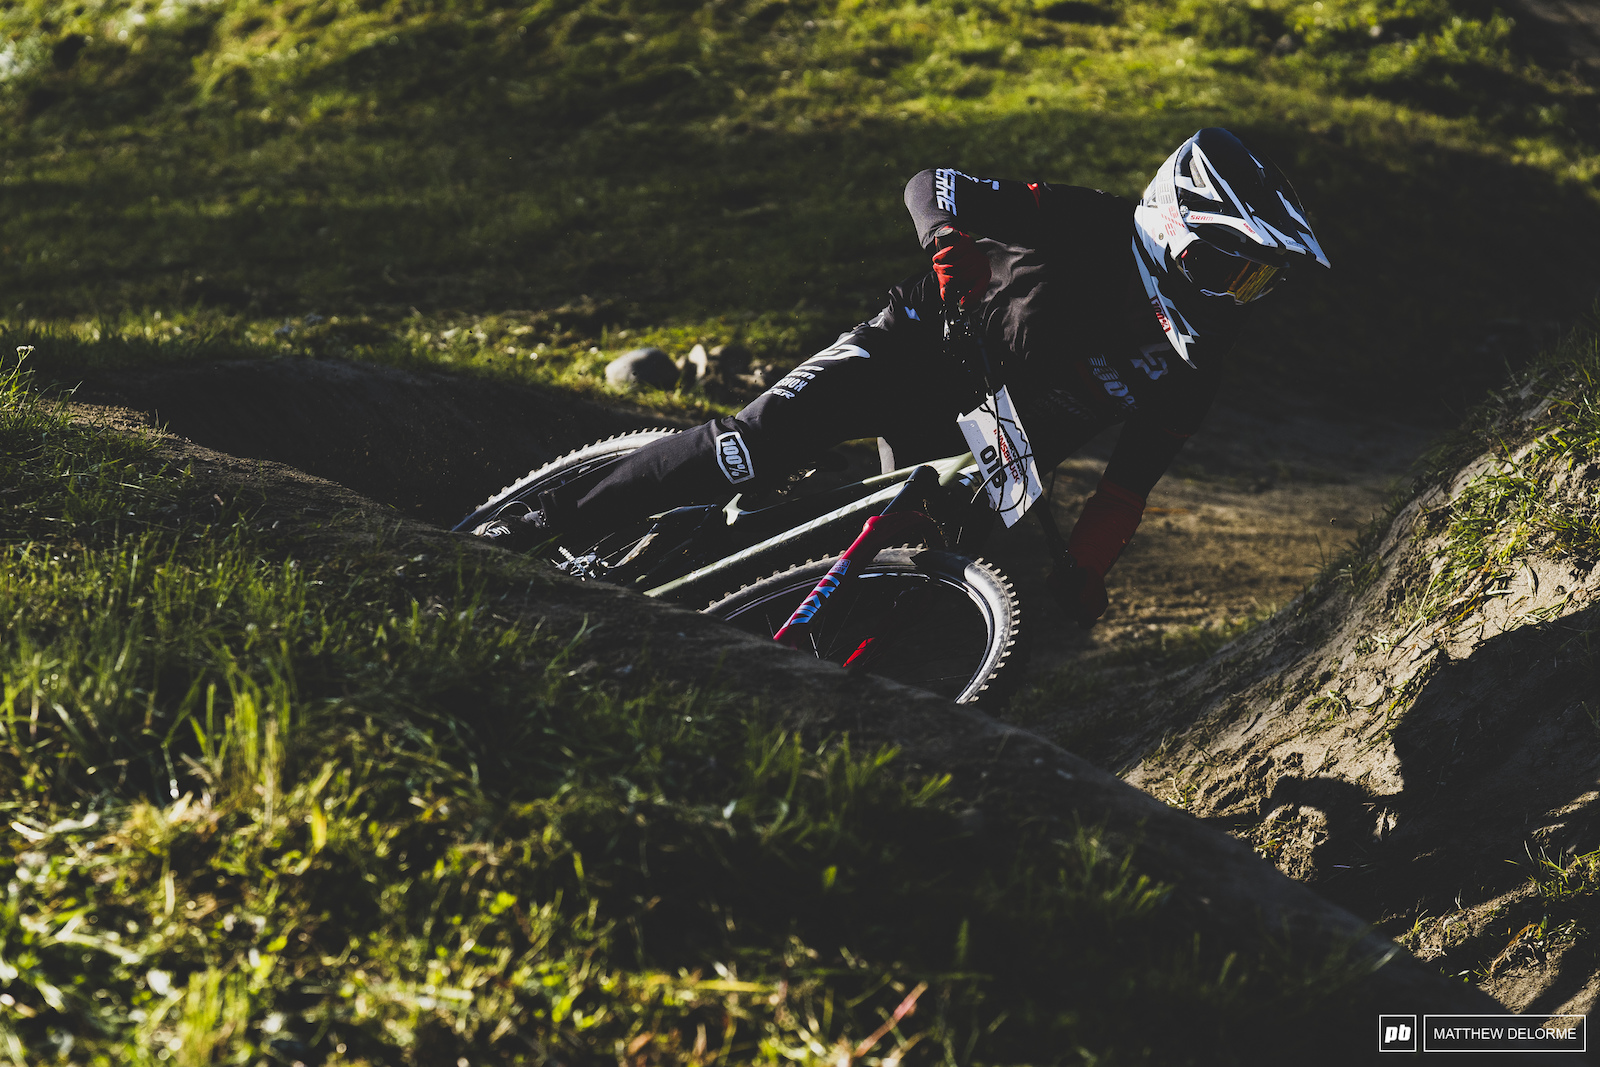 Adrien Dailly hot off the EWS tracks and onto DS.